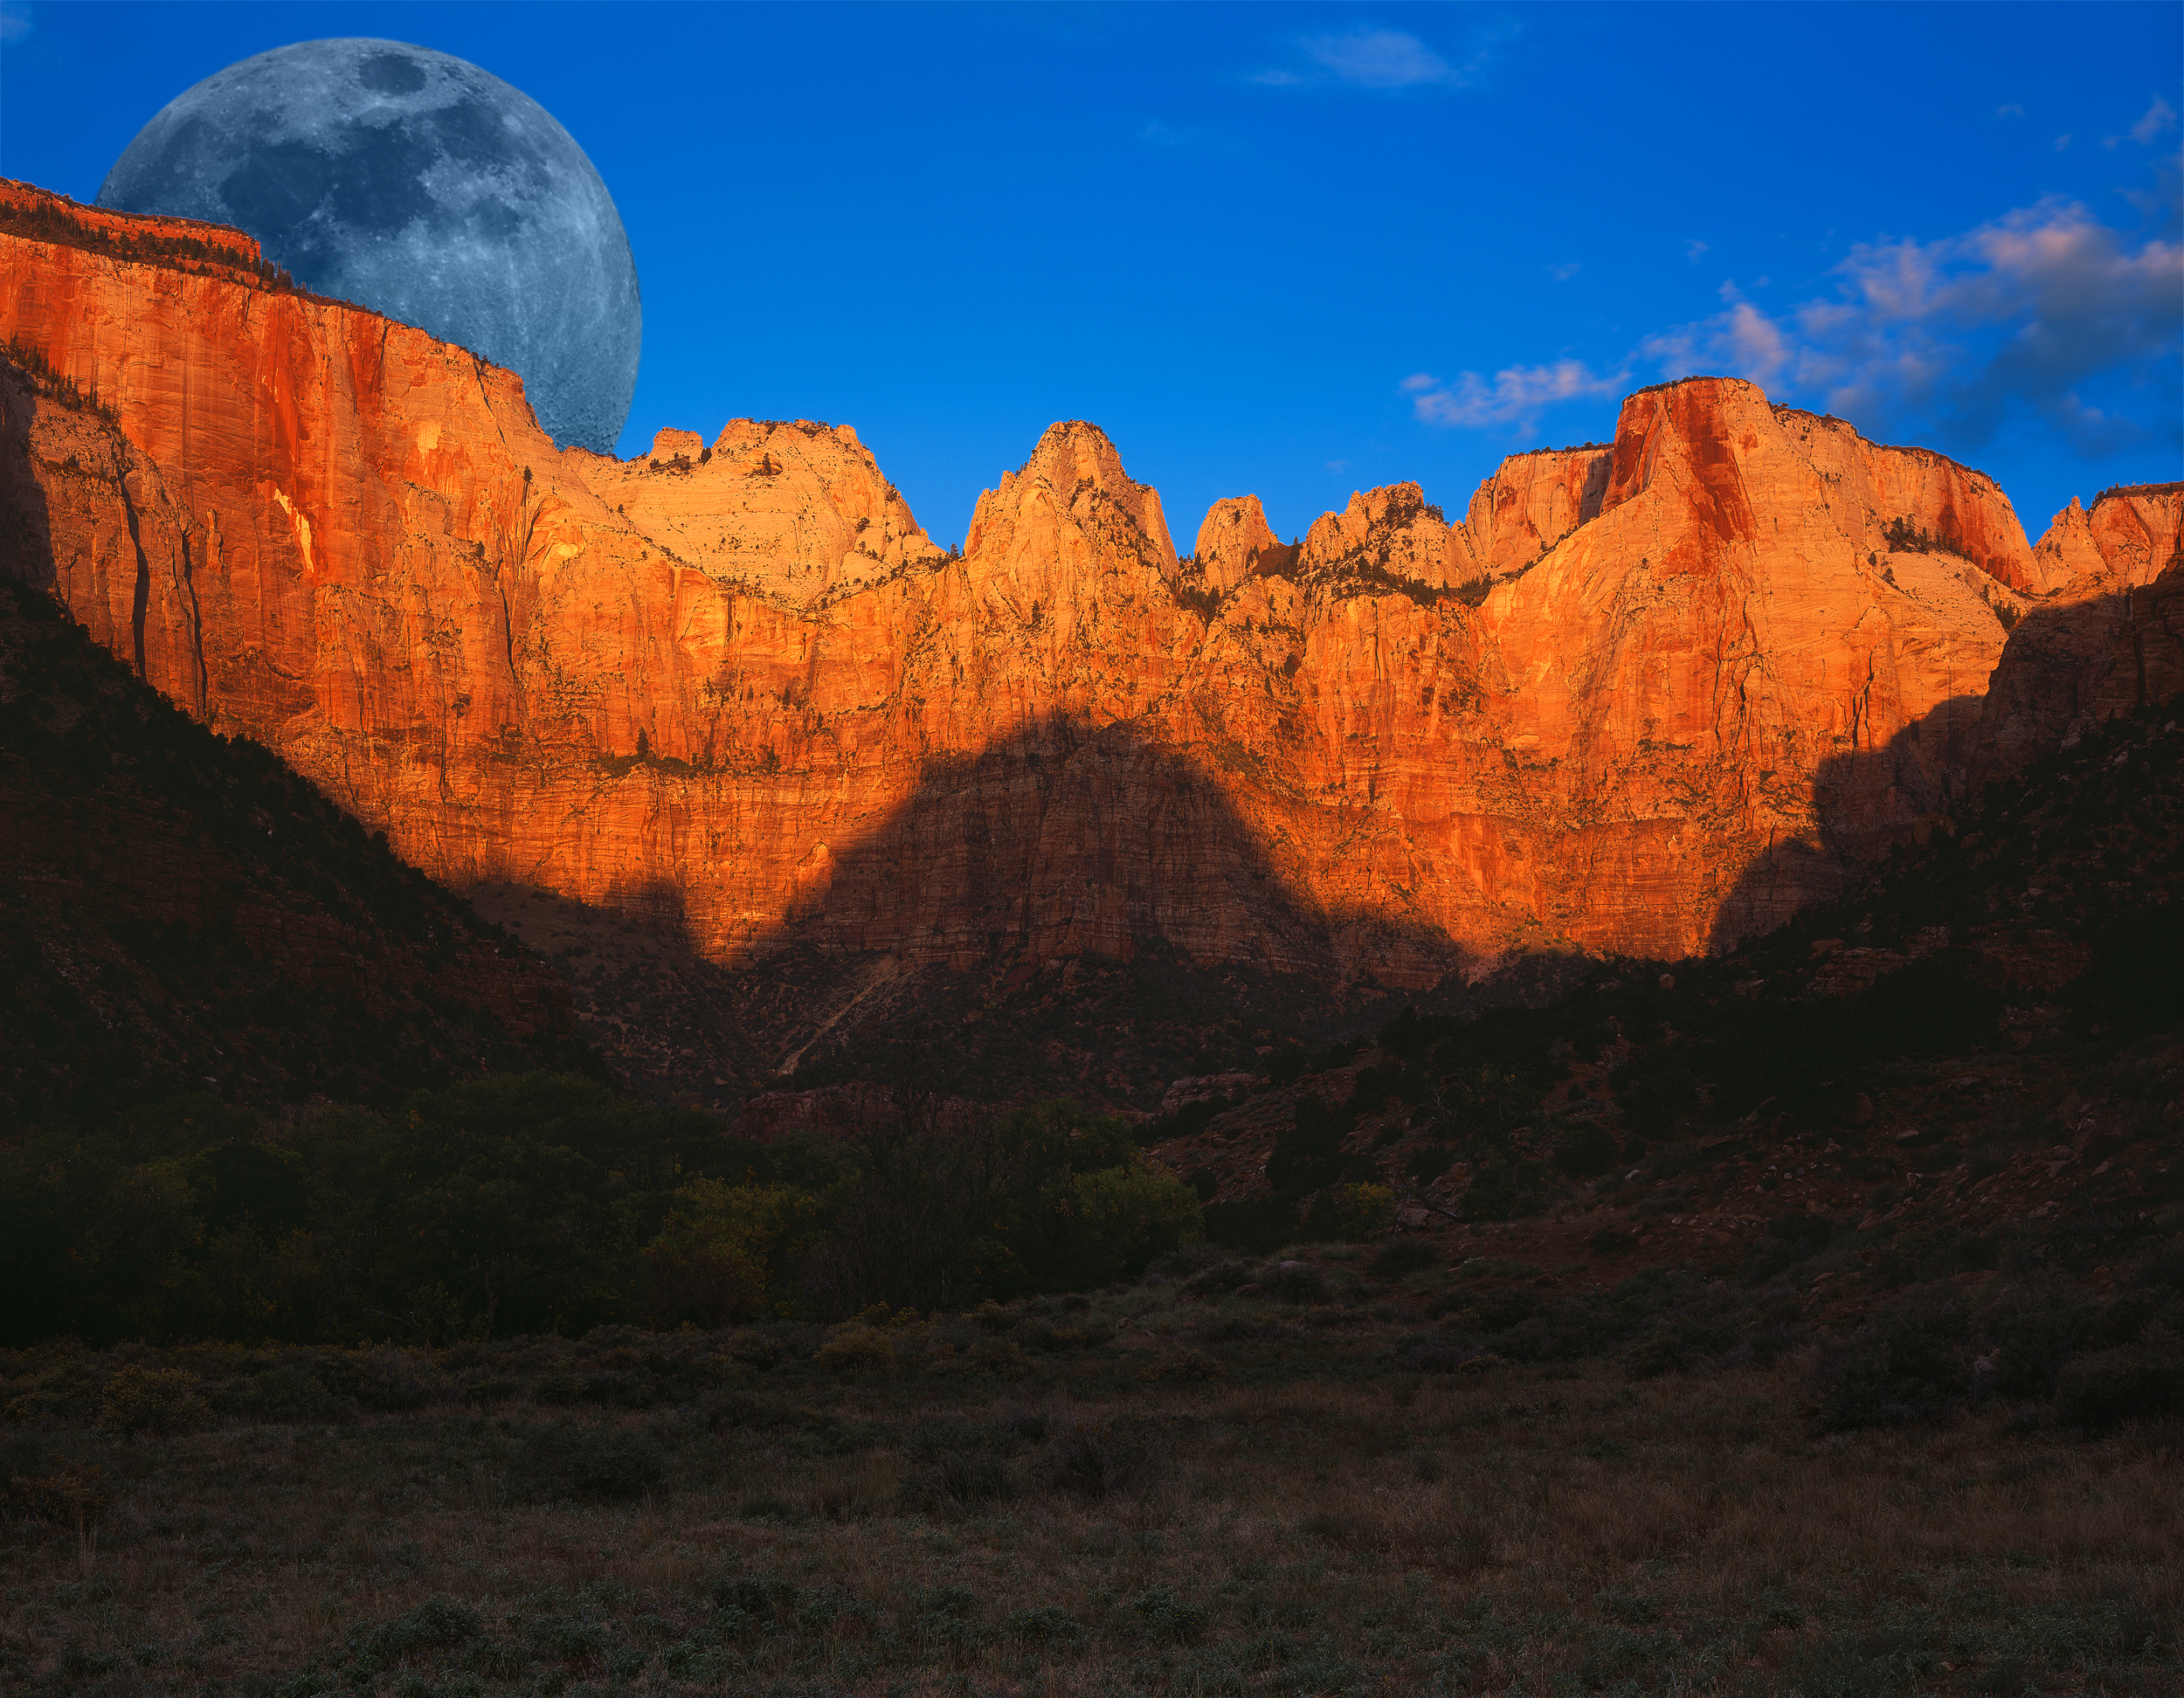 Moonrise Over the Towers. Single shot. Peter Lik Filter applied in camera...